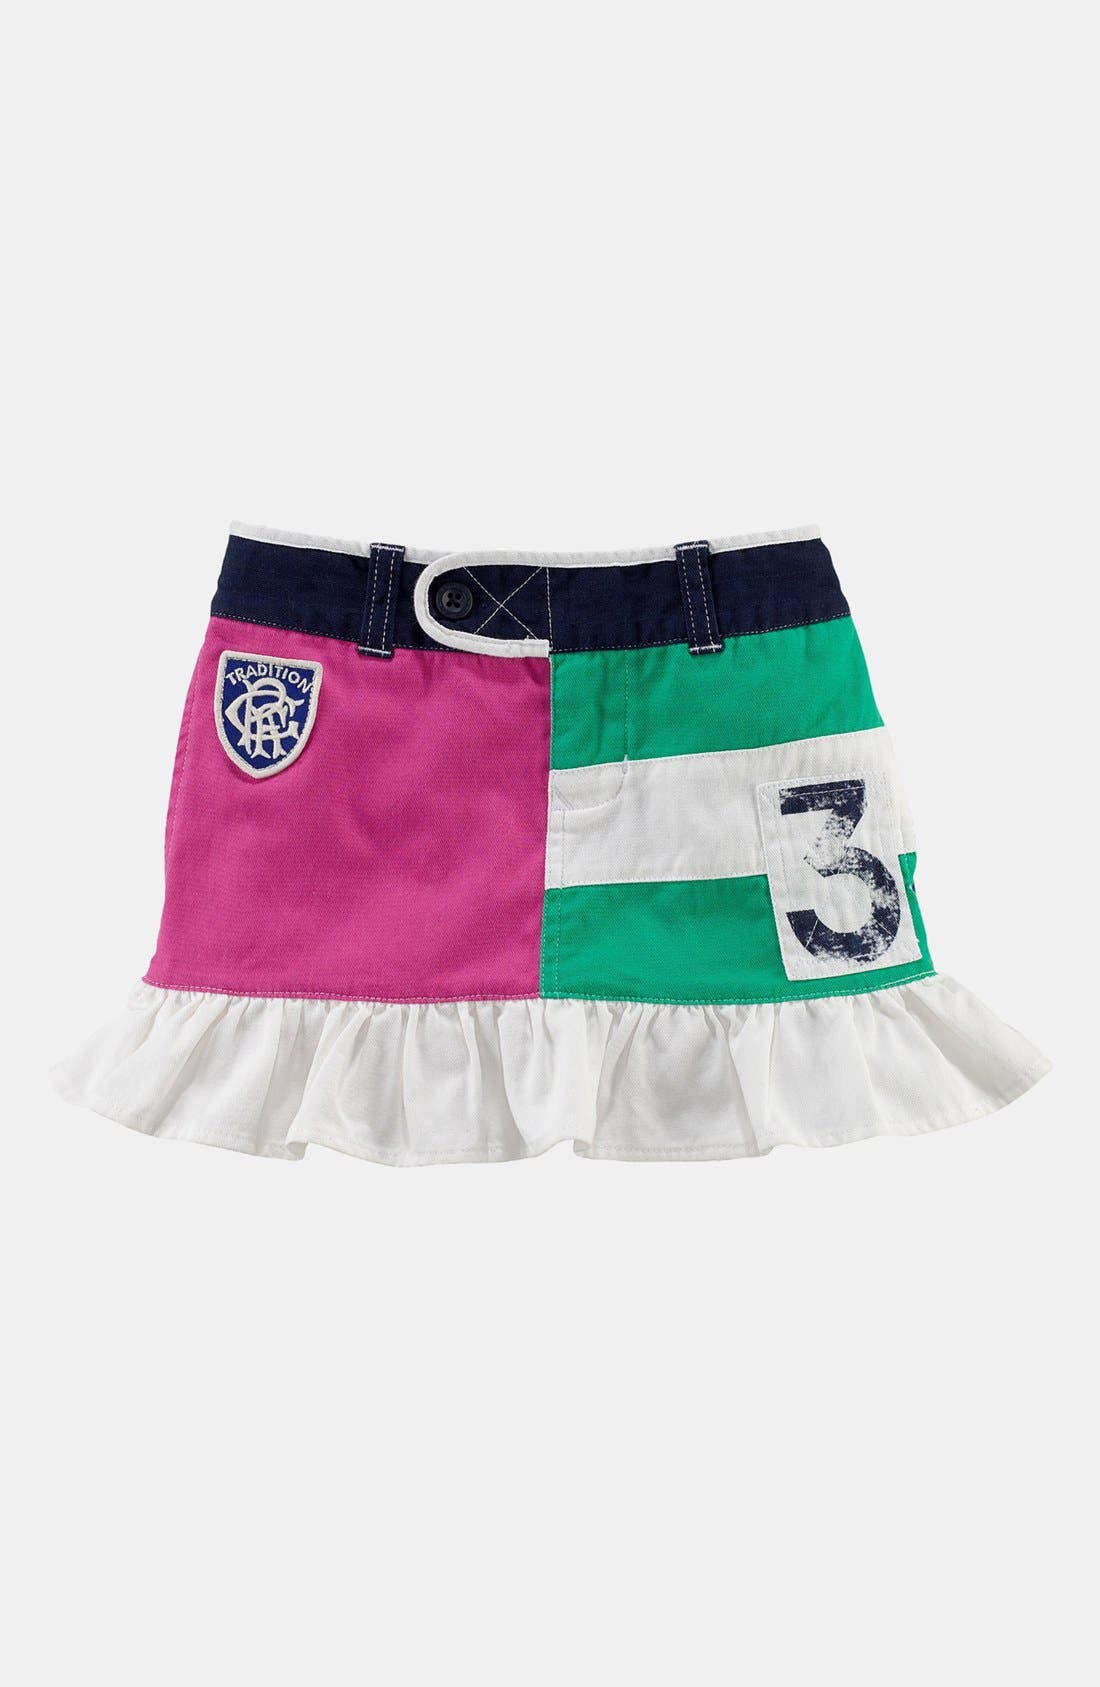 Alternate Image 1 Selected - Ralph Lauren Ruffle Skirt (Toddler)